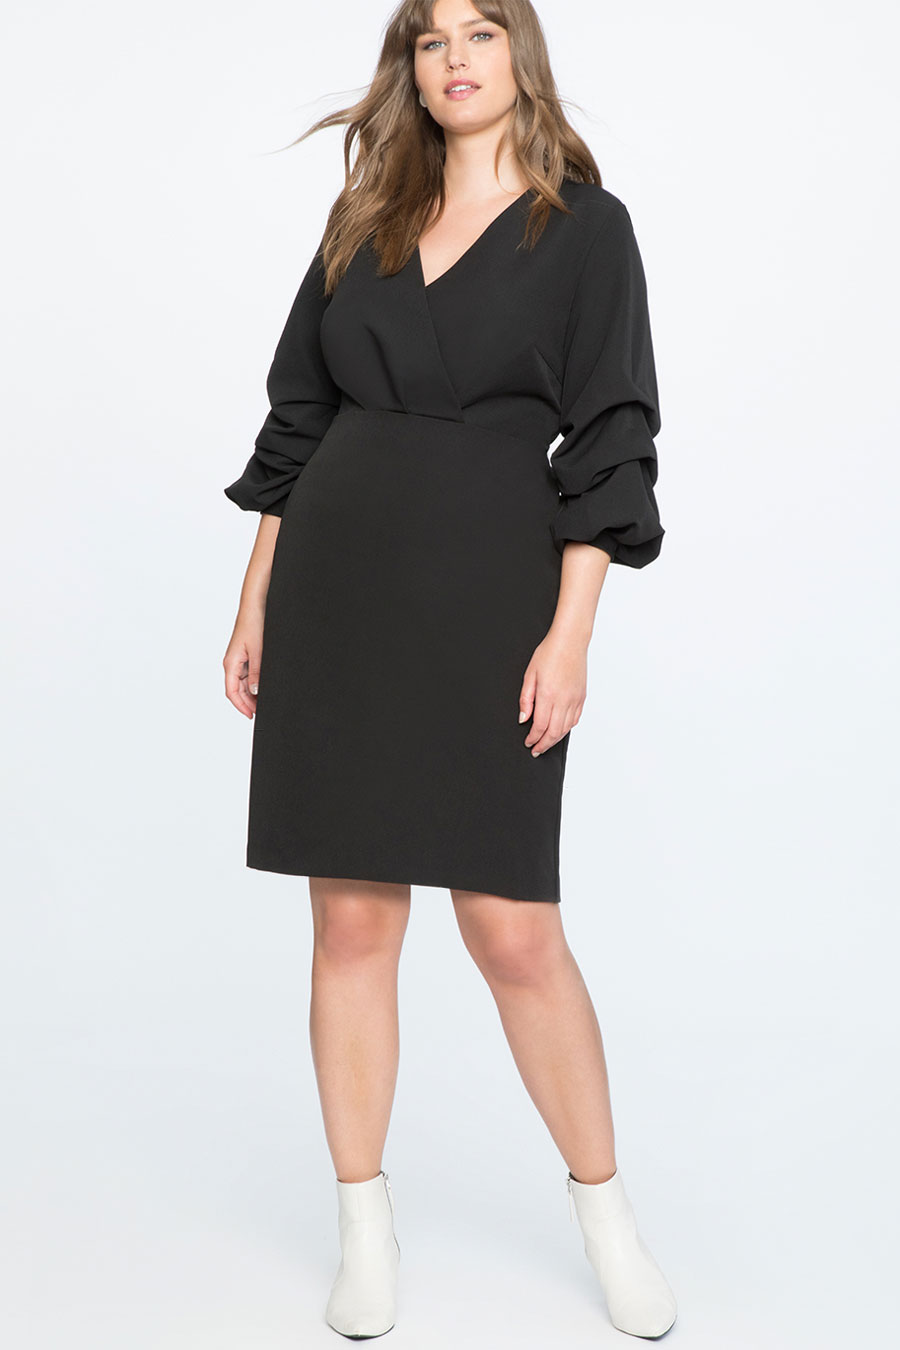 Eloquii Puff Sleeve Overlap V-Neck Dress